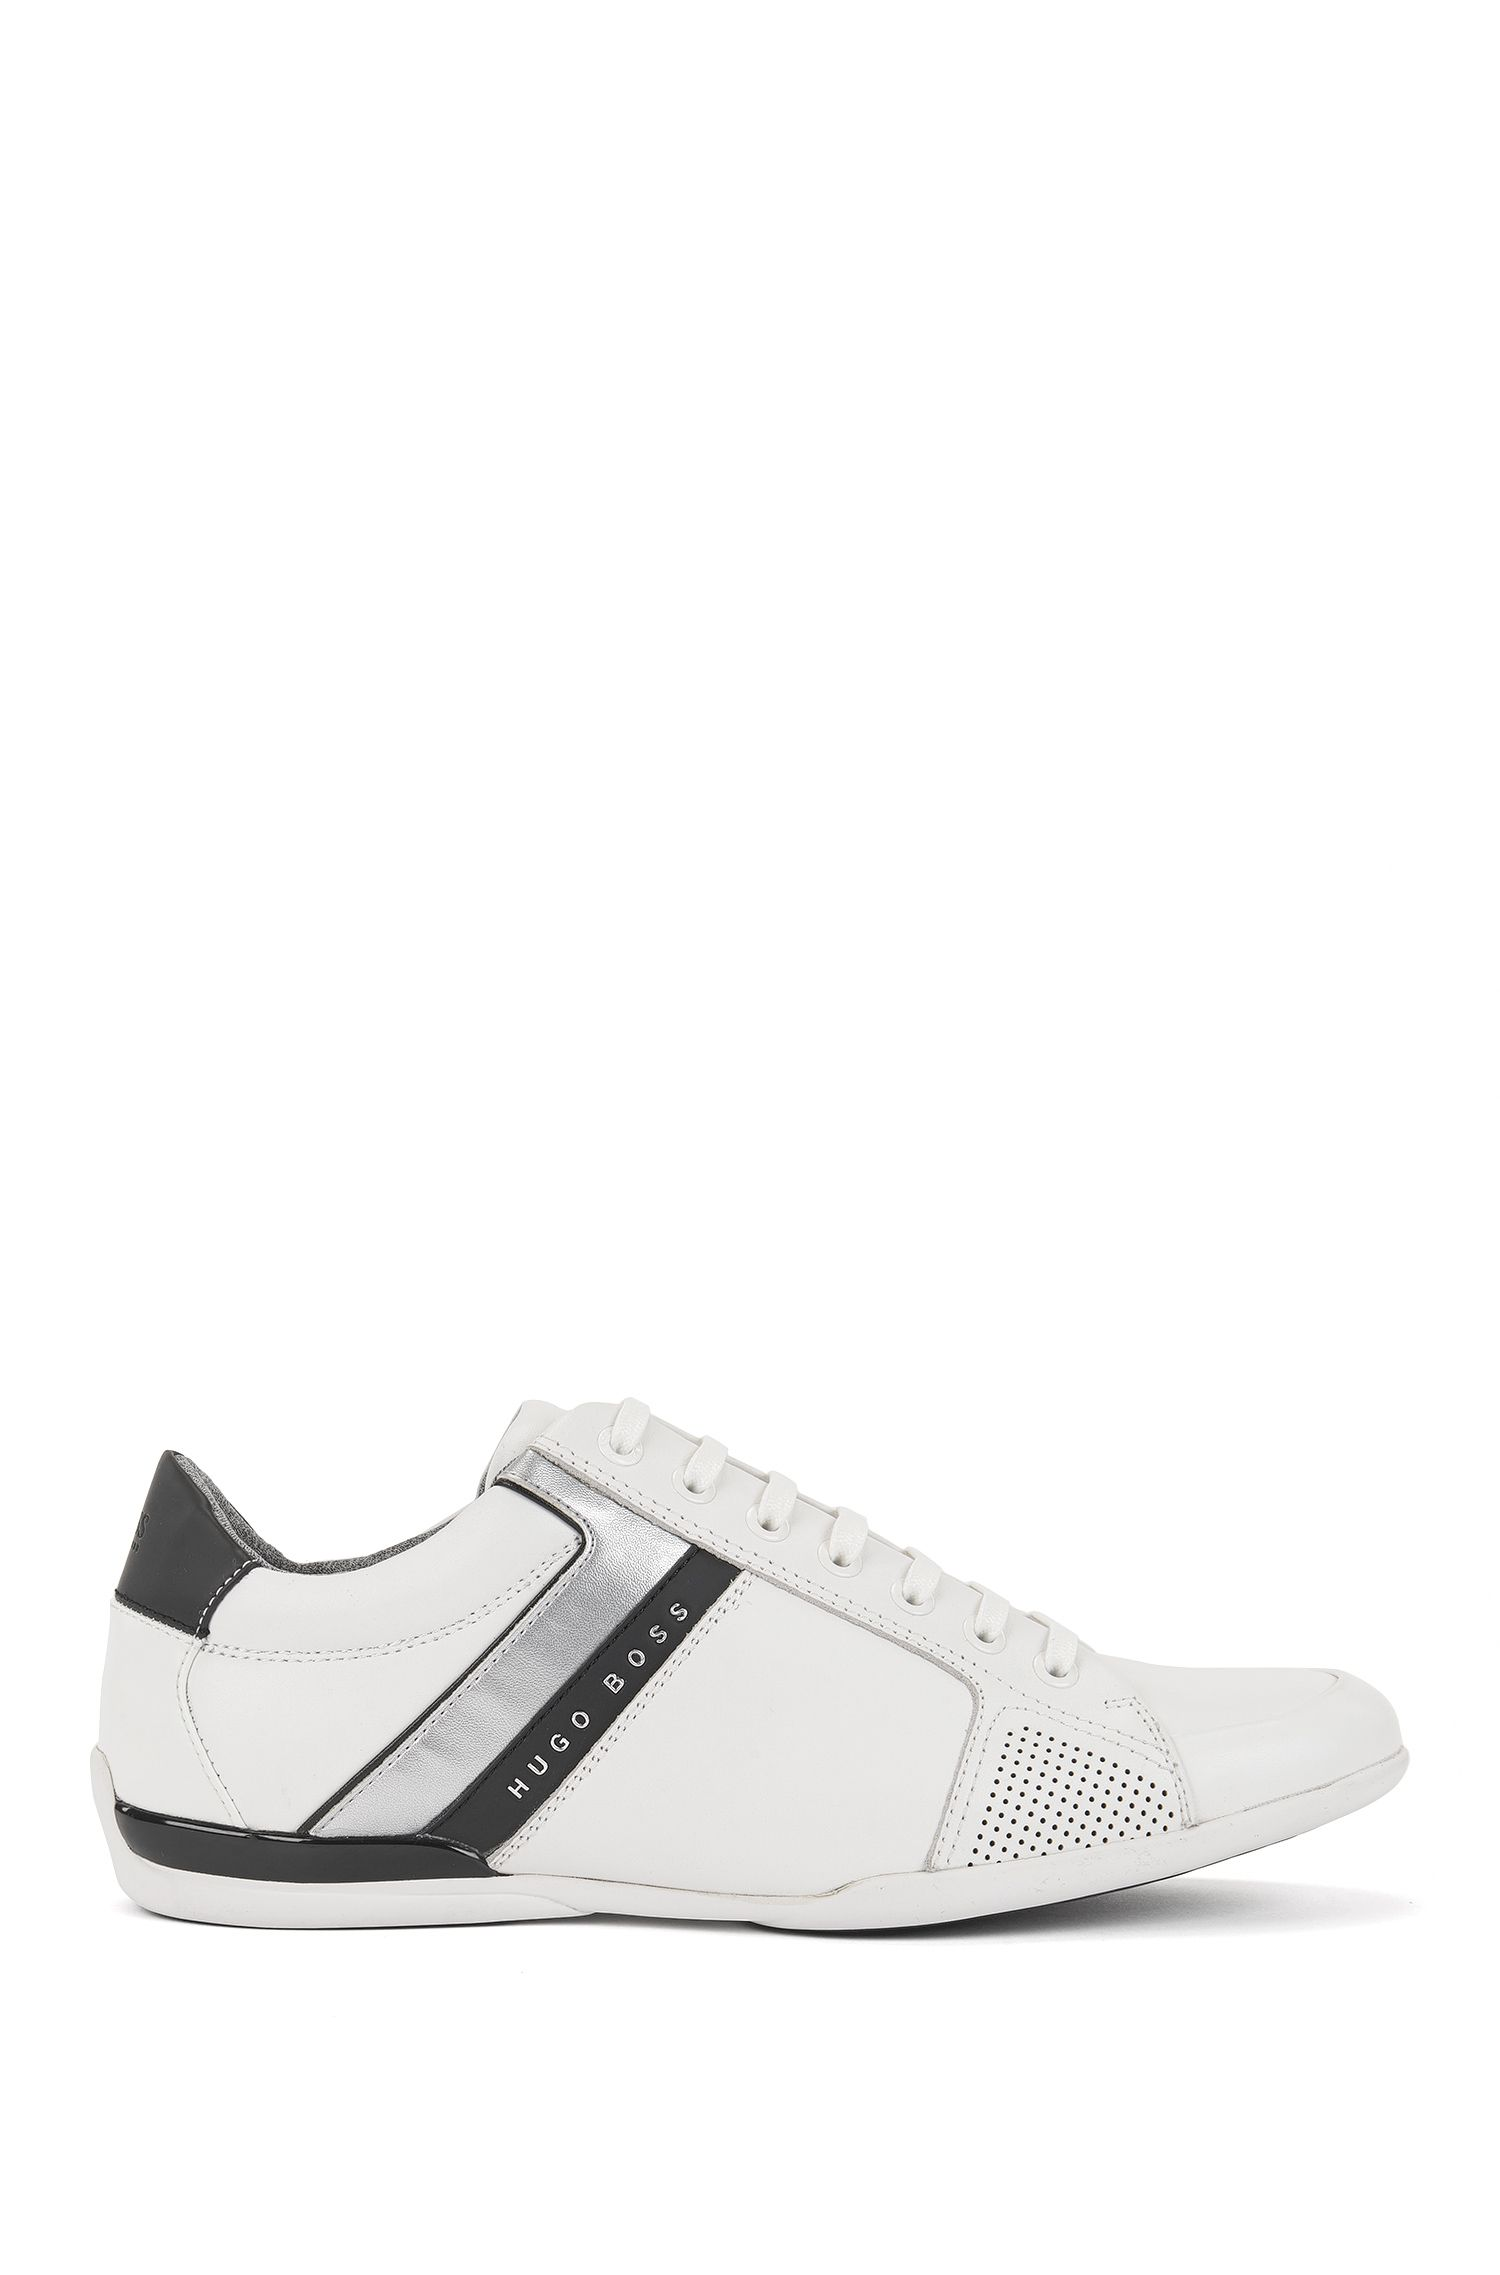 Sneakers low-top in pelle nappa